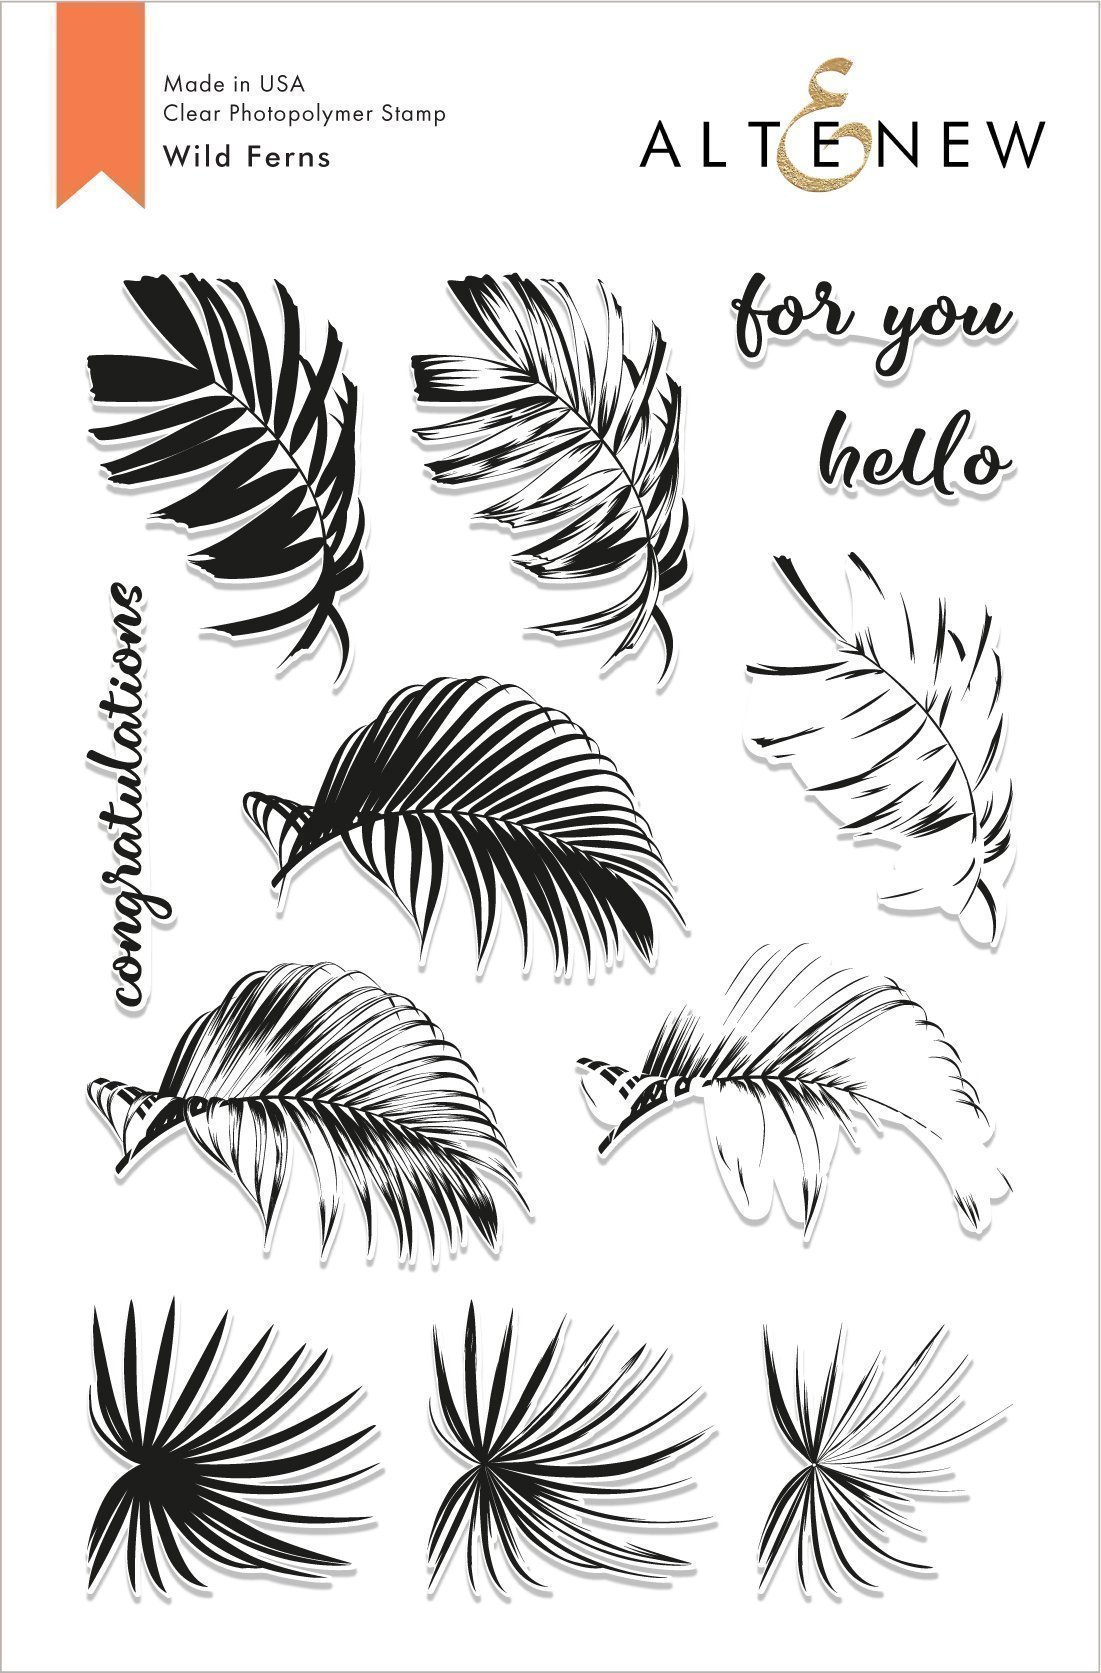 *NEW* - Altenew - Wild Ferns Stamp Set